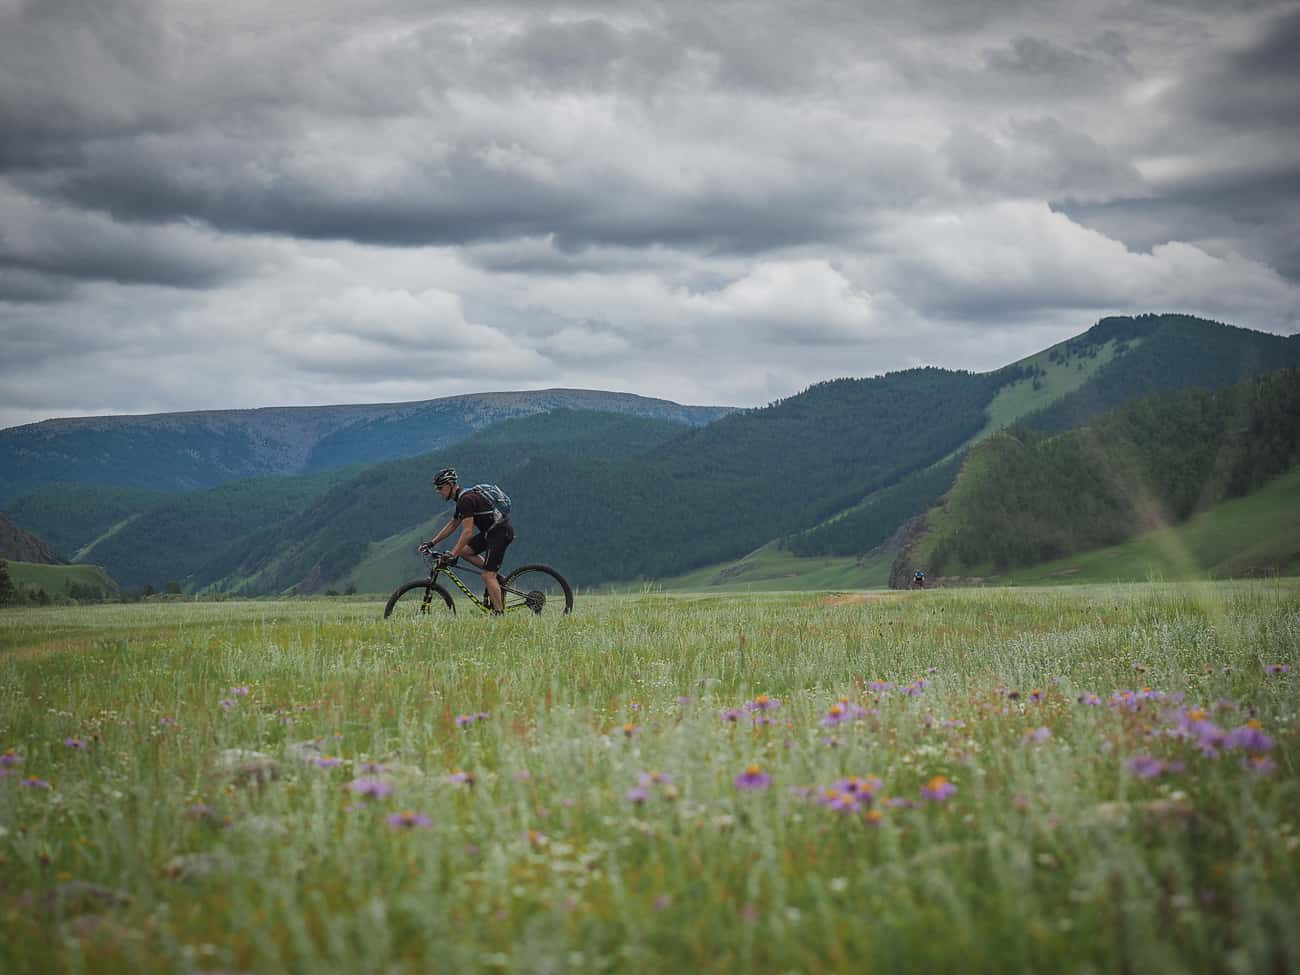 Mongolia 2018 Review cycling holidays banner image